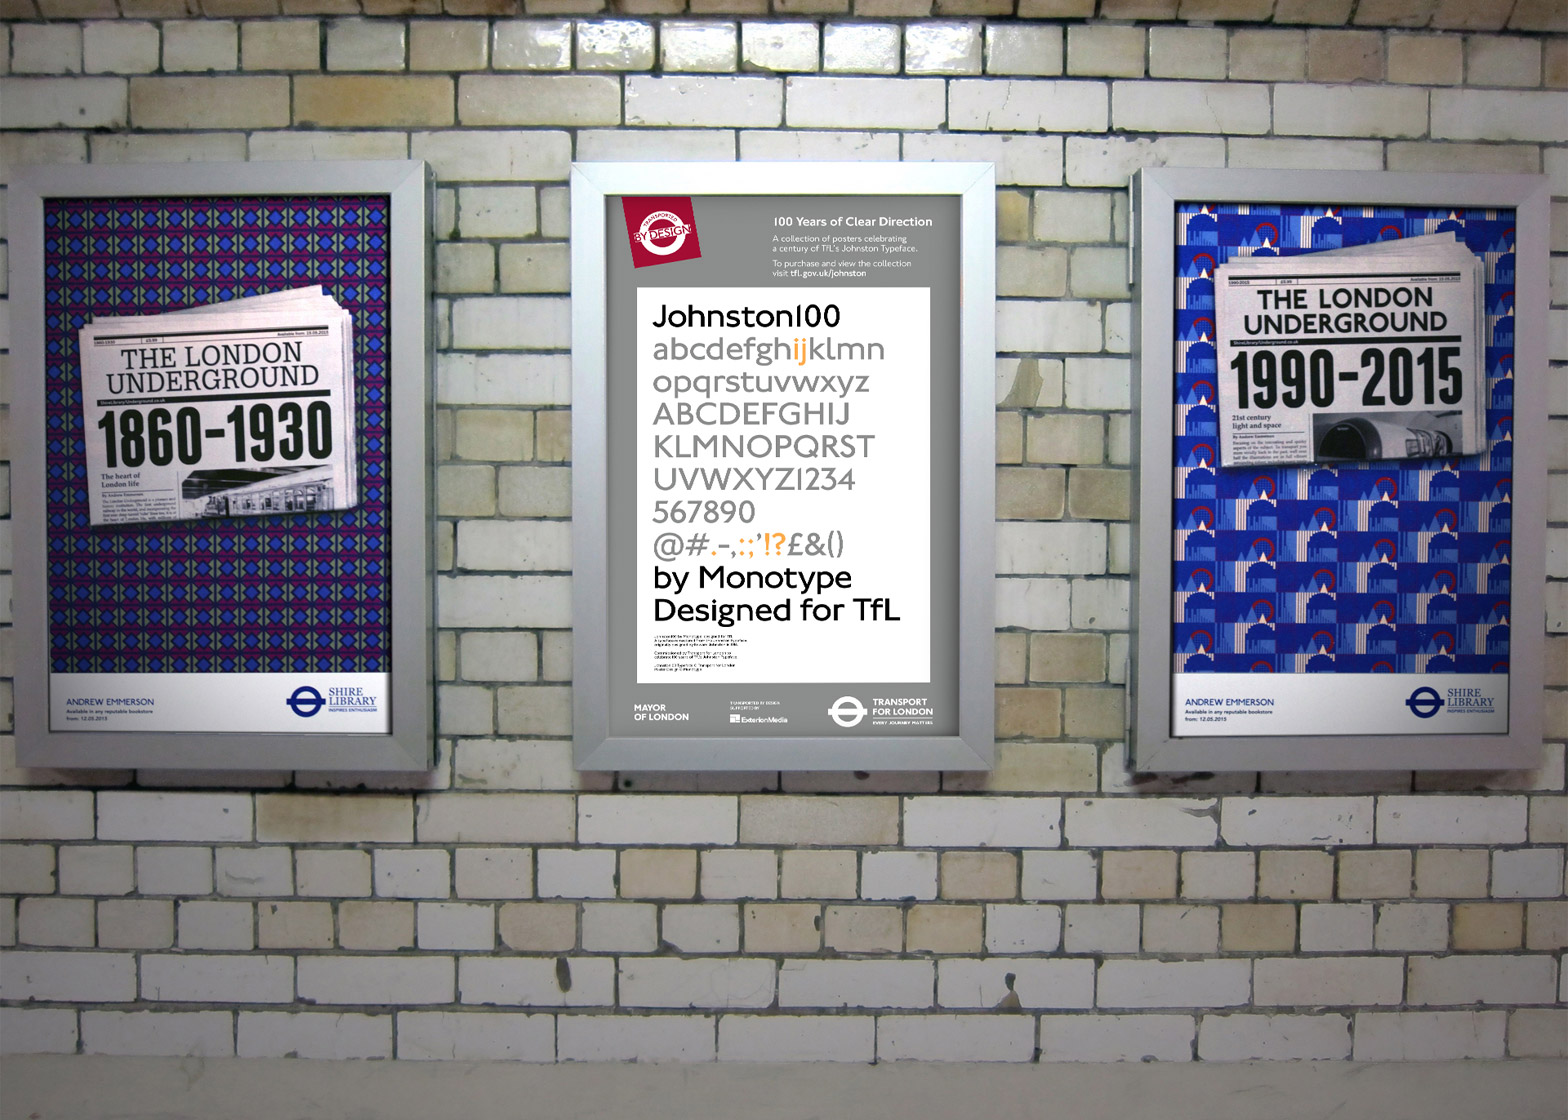 New Tfl typeface by Monotype